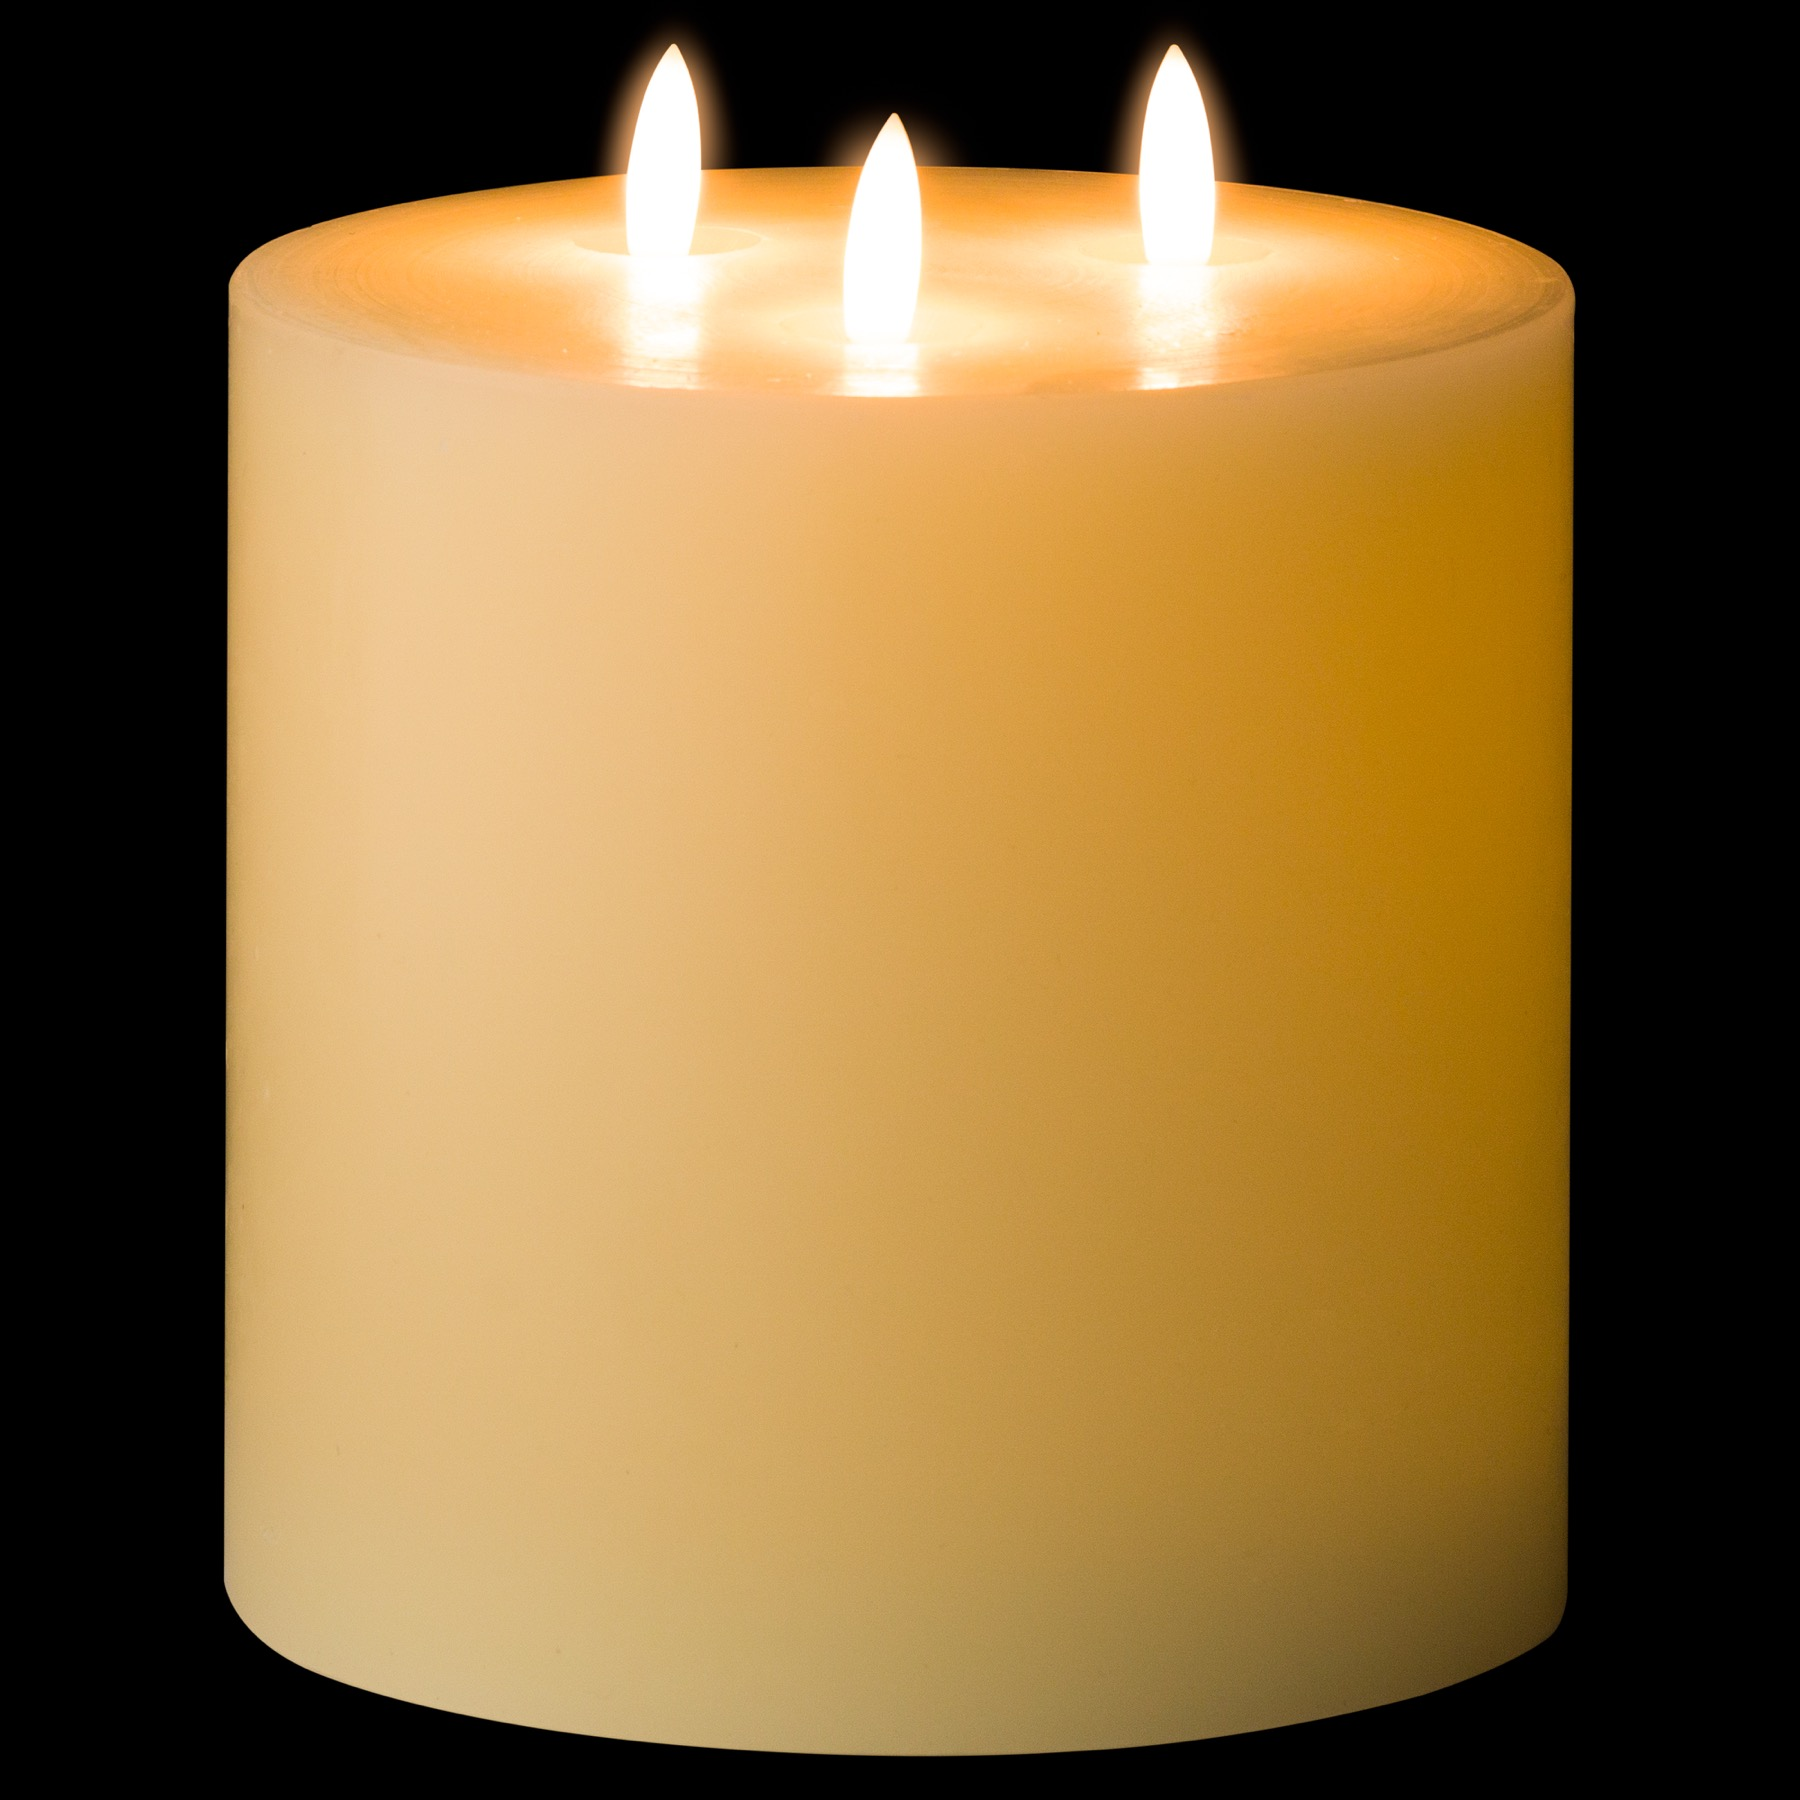 Luxe Collection Natural Glow 6 x 6 LED Ivory Candle - Image 2